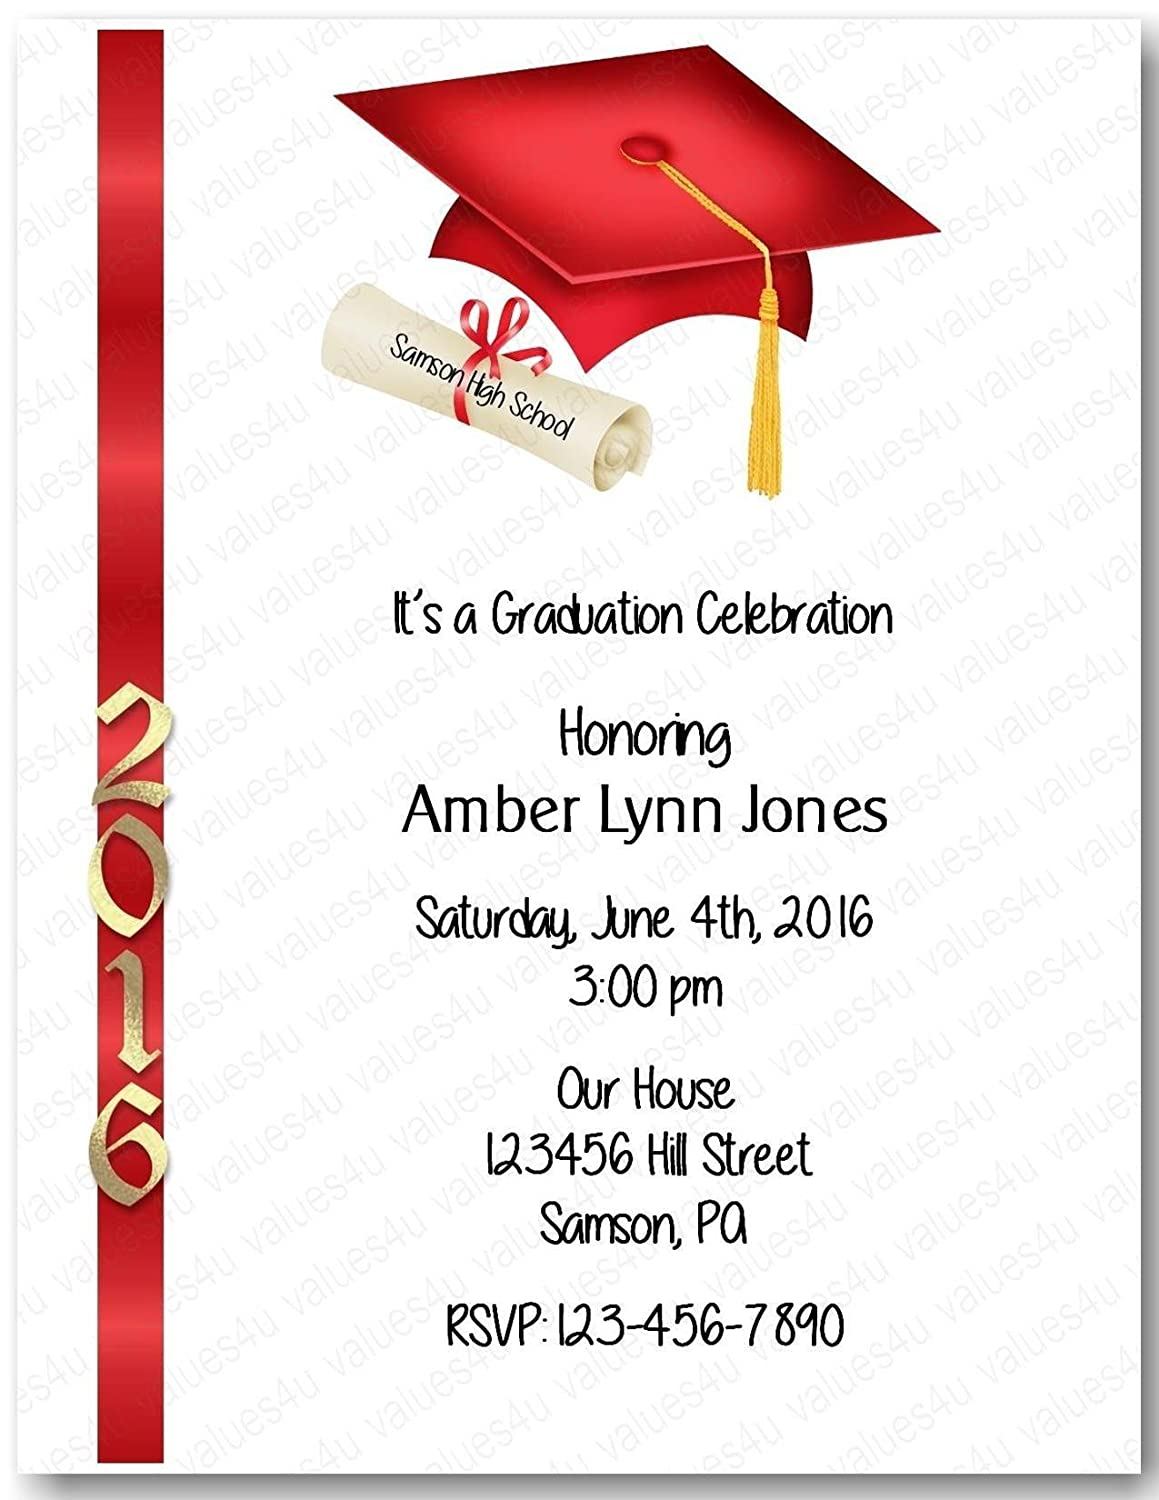 Personalized Graduation OFFicial New Orleans Mall shop Party party933 graduation Invitation